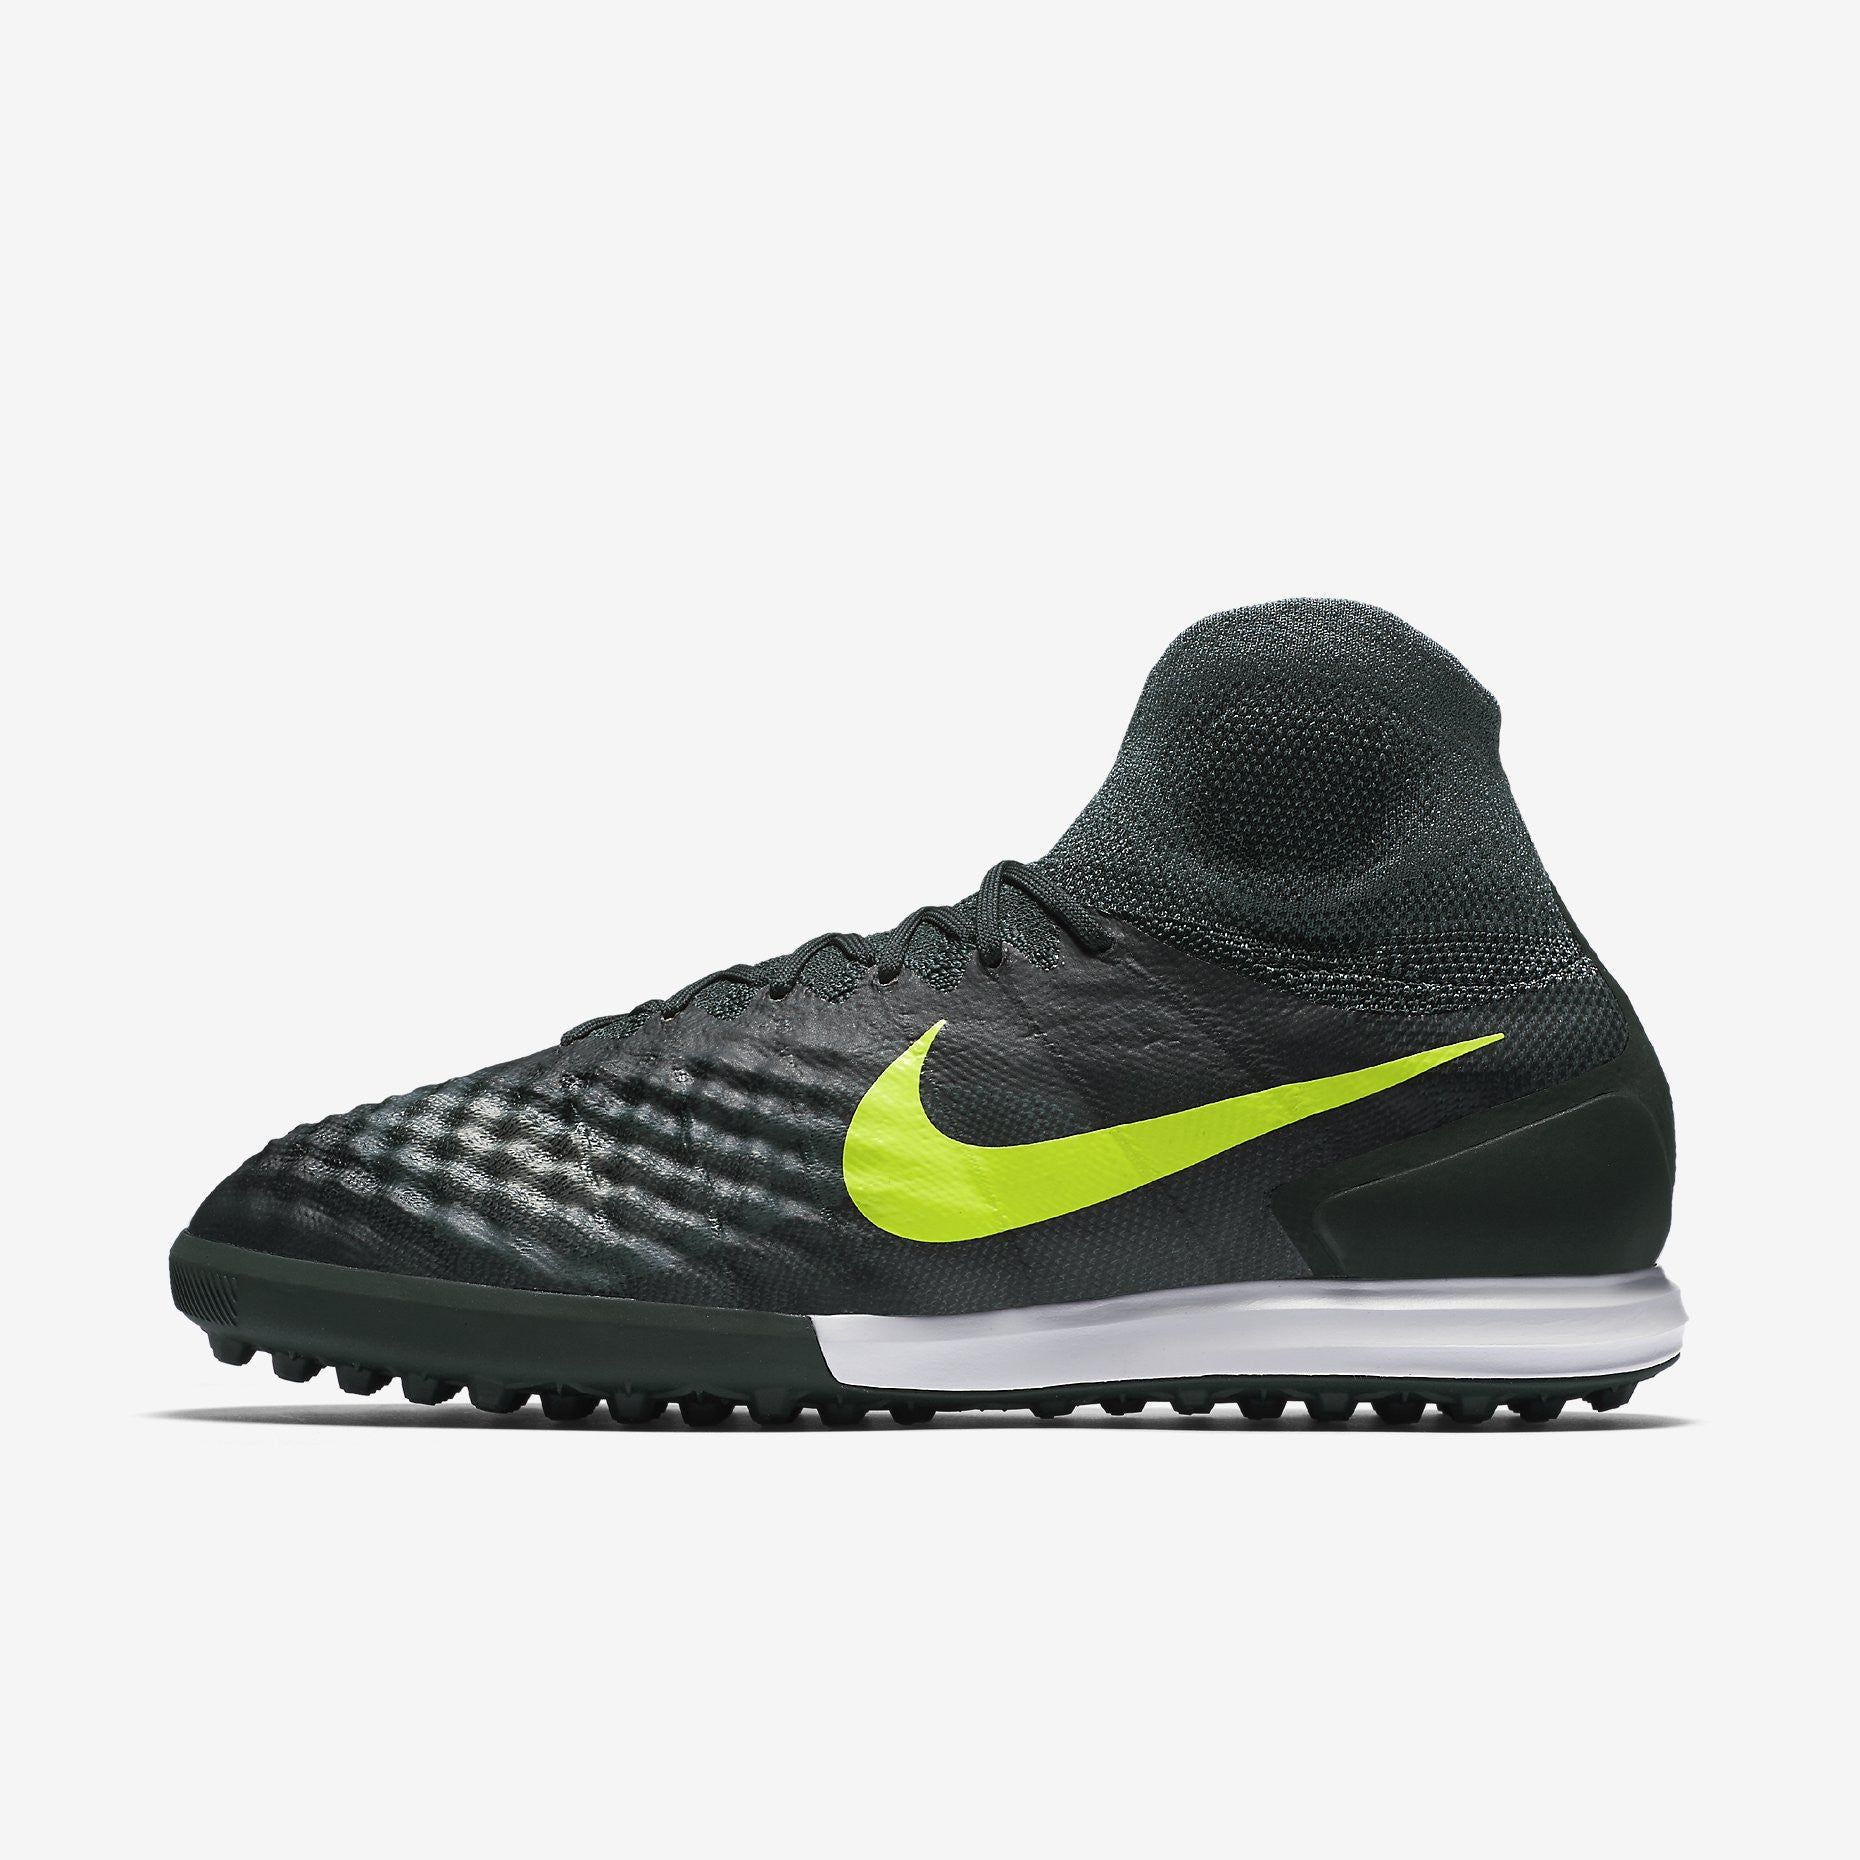 9b4ee870e206 Nike - Nike Men s MagistaX Proximo II Dynamic Fit Turf Football Boot - La  Liga Soccer